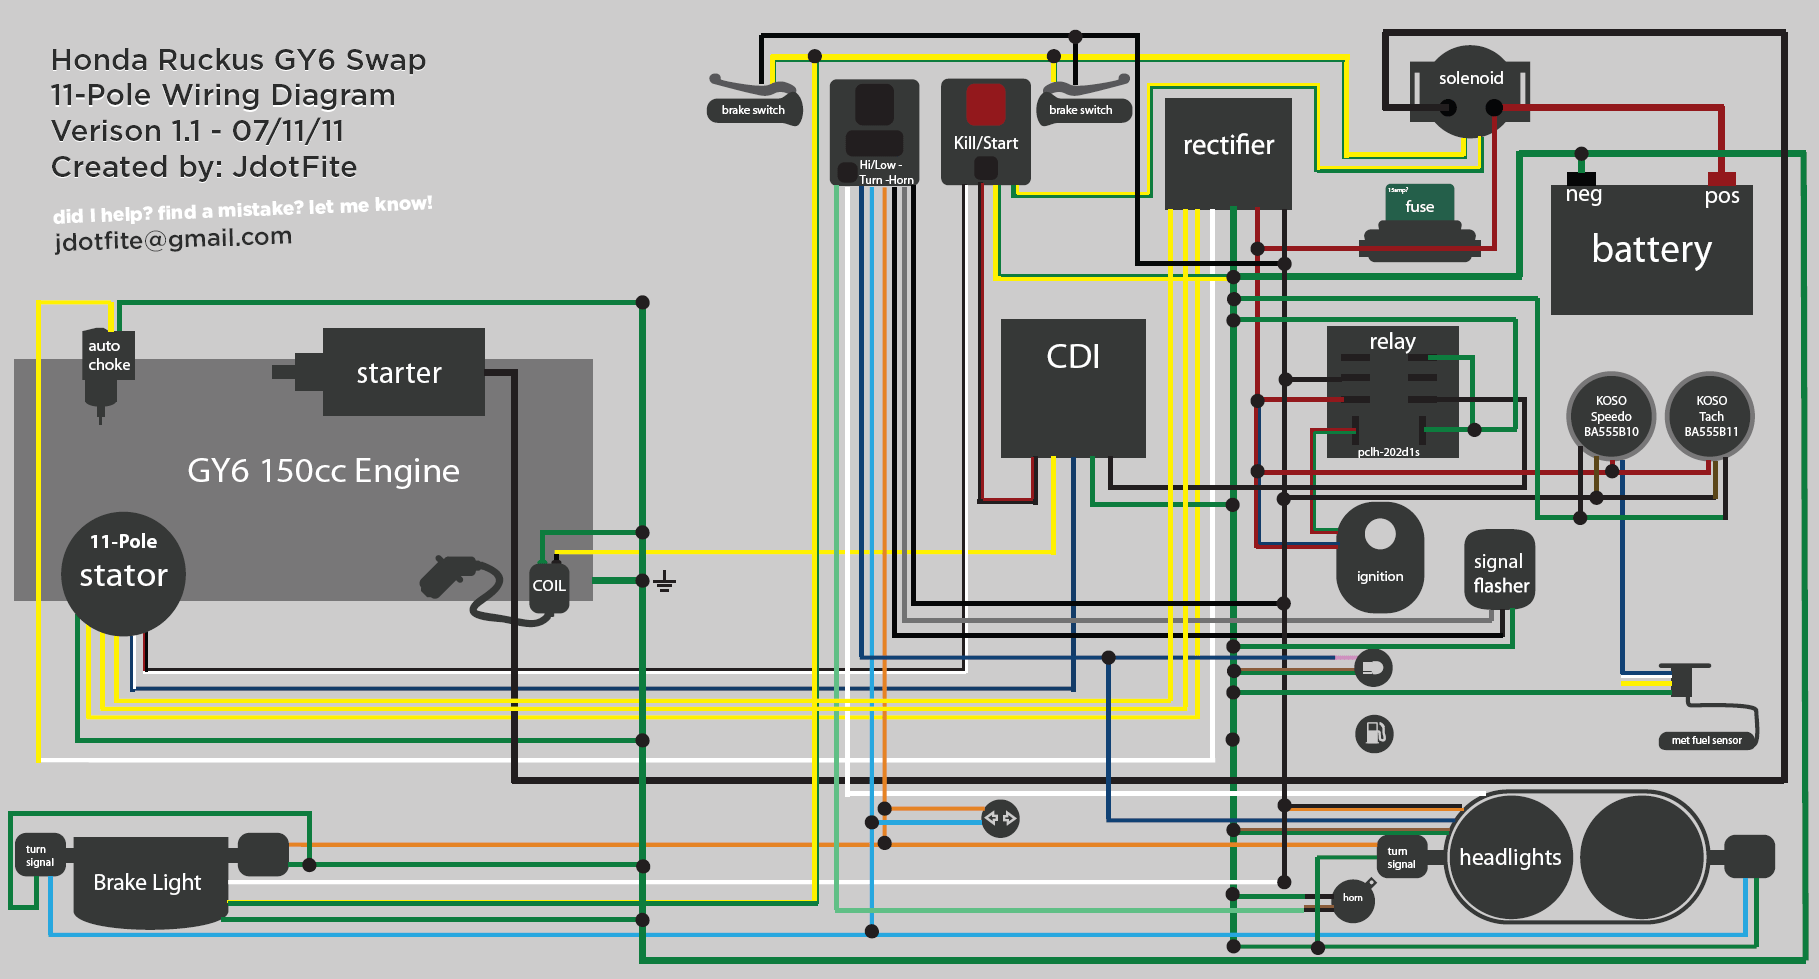 ruckus gy6 wiring diagram ruckus gy6 swap wiring diagram honda ruckus documentation 6 wire cdi wiring diagram at bayanpartner.co